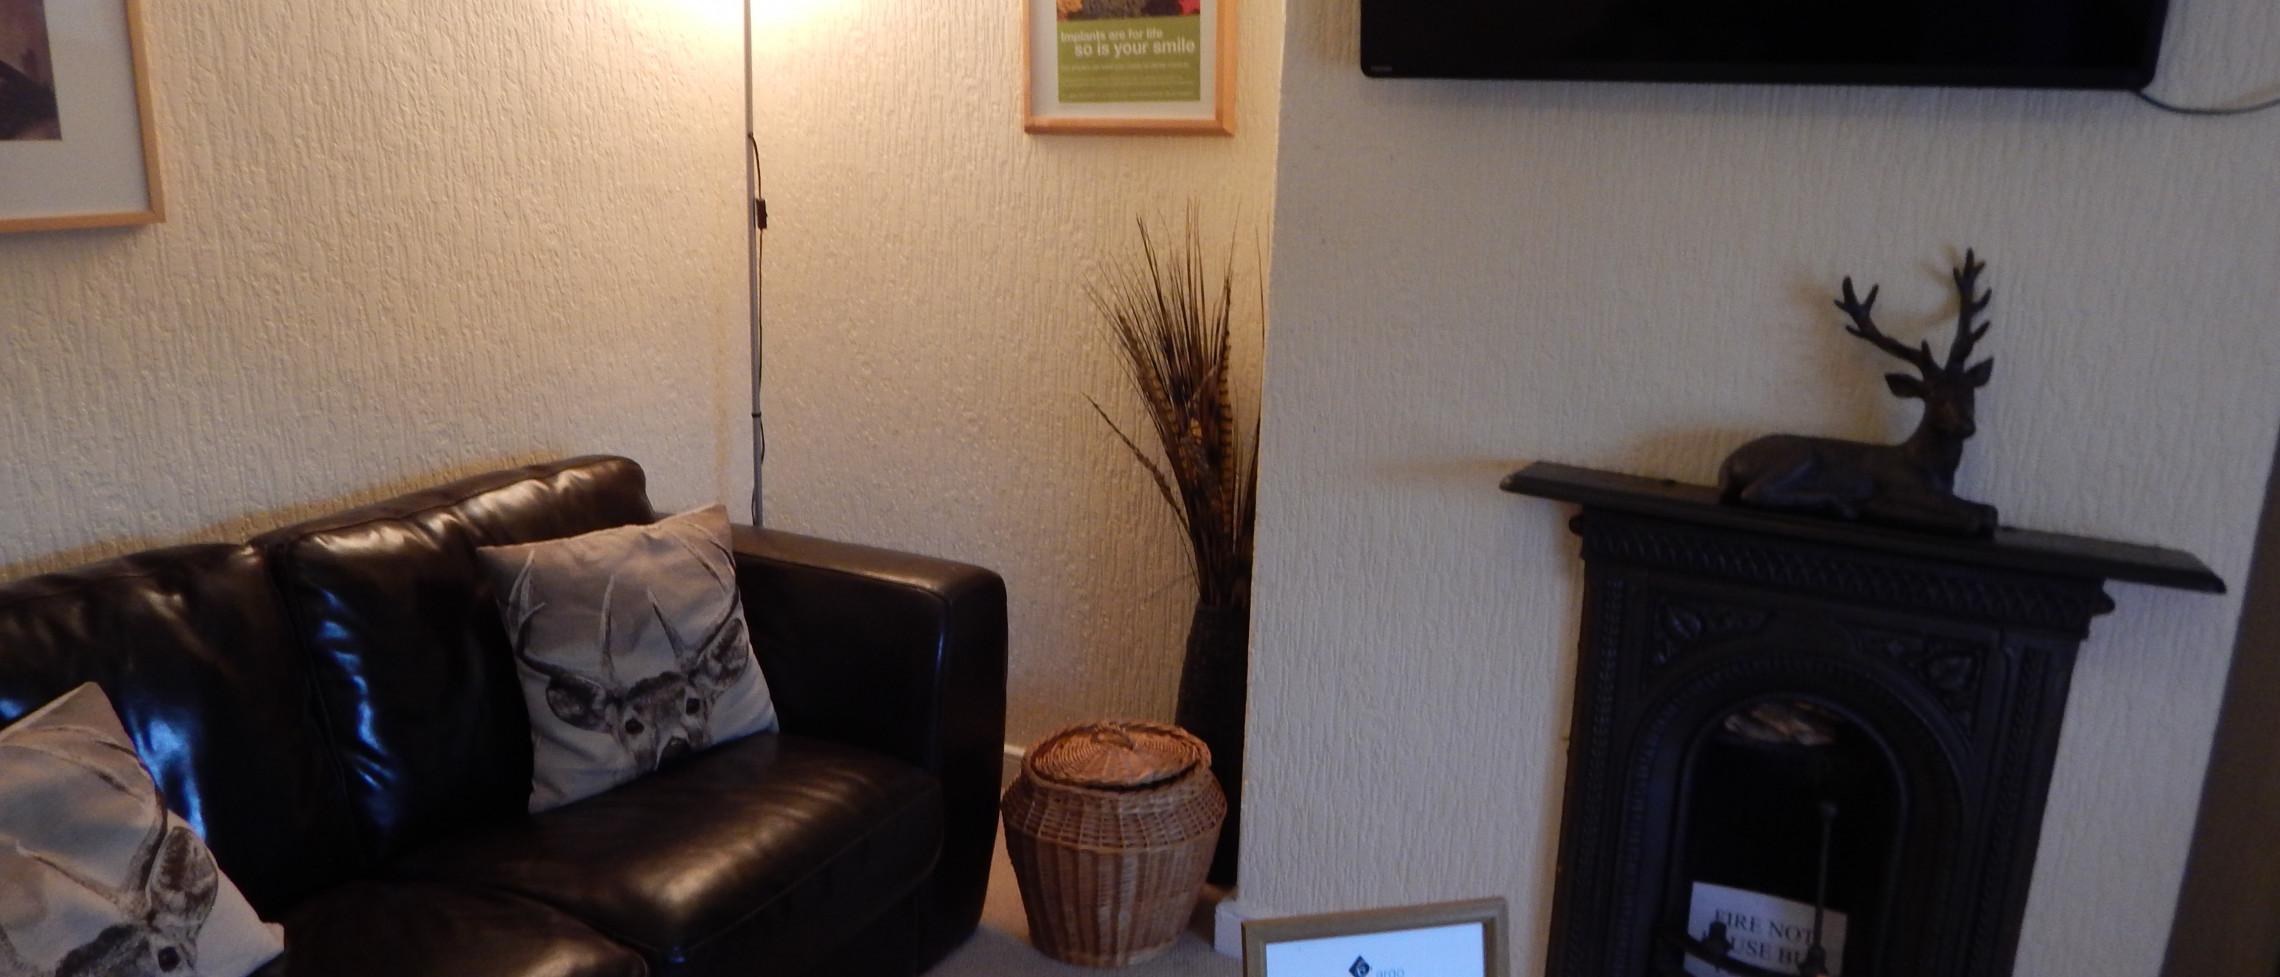 Patient Waiting room has a lovely relaxing cottage feel.